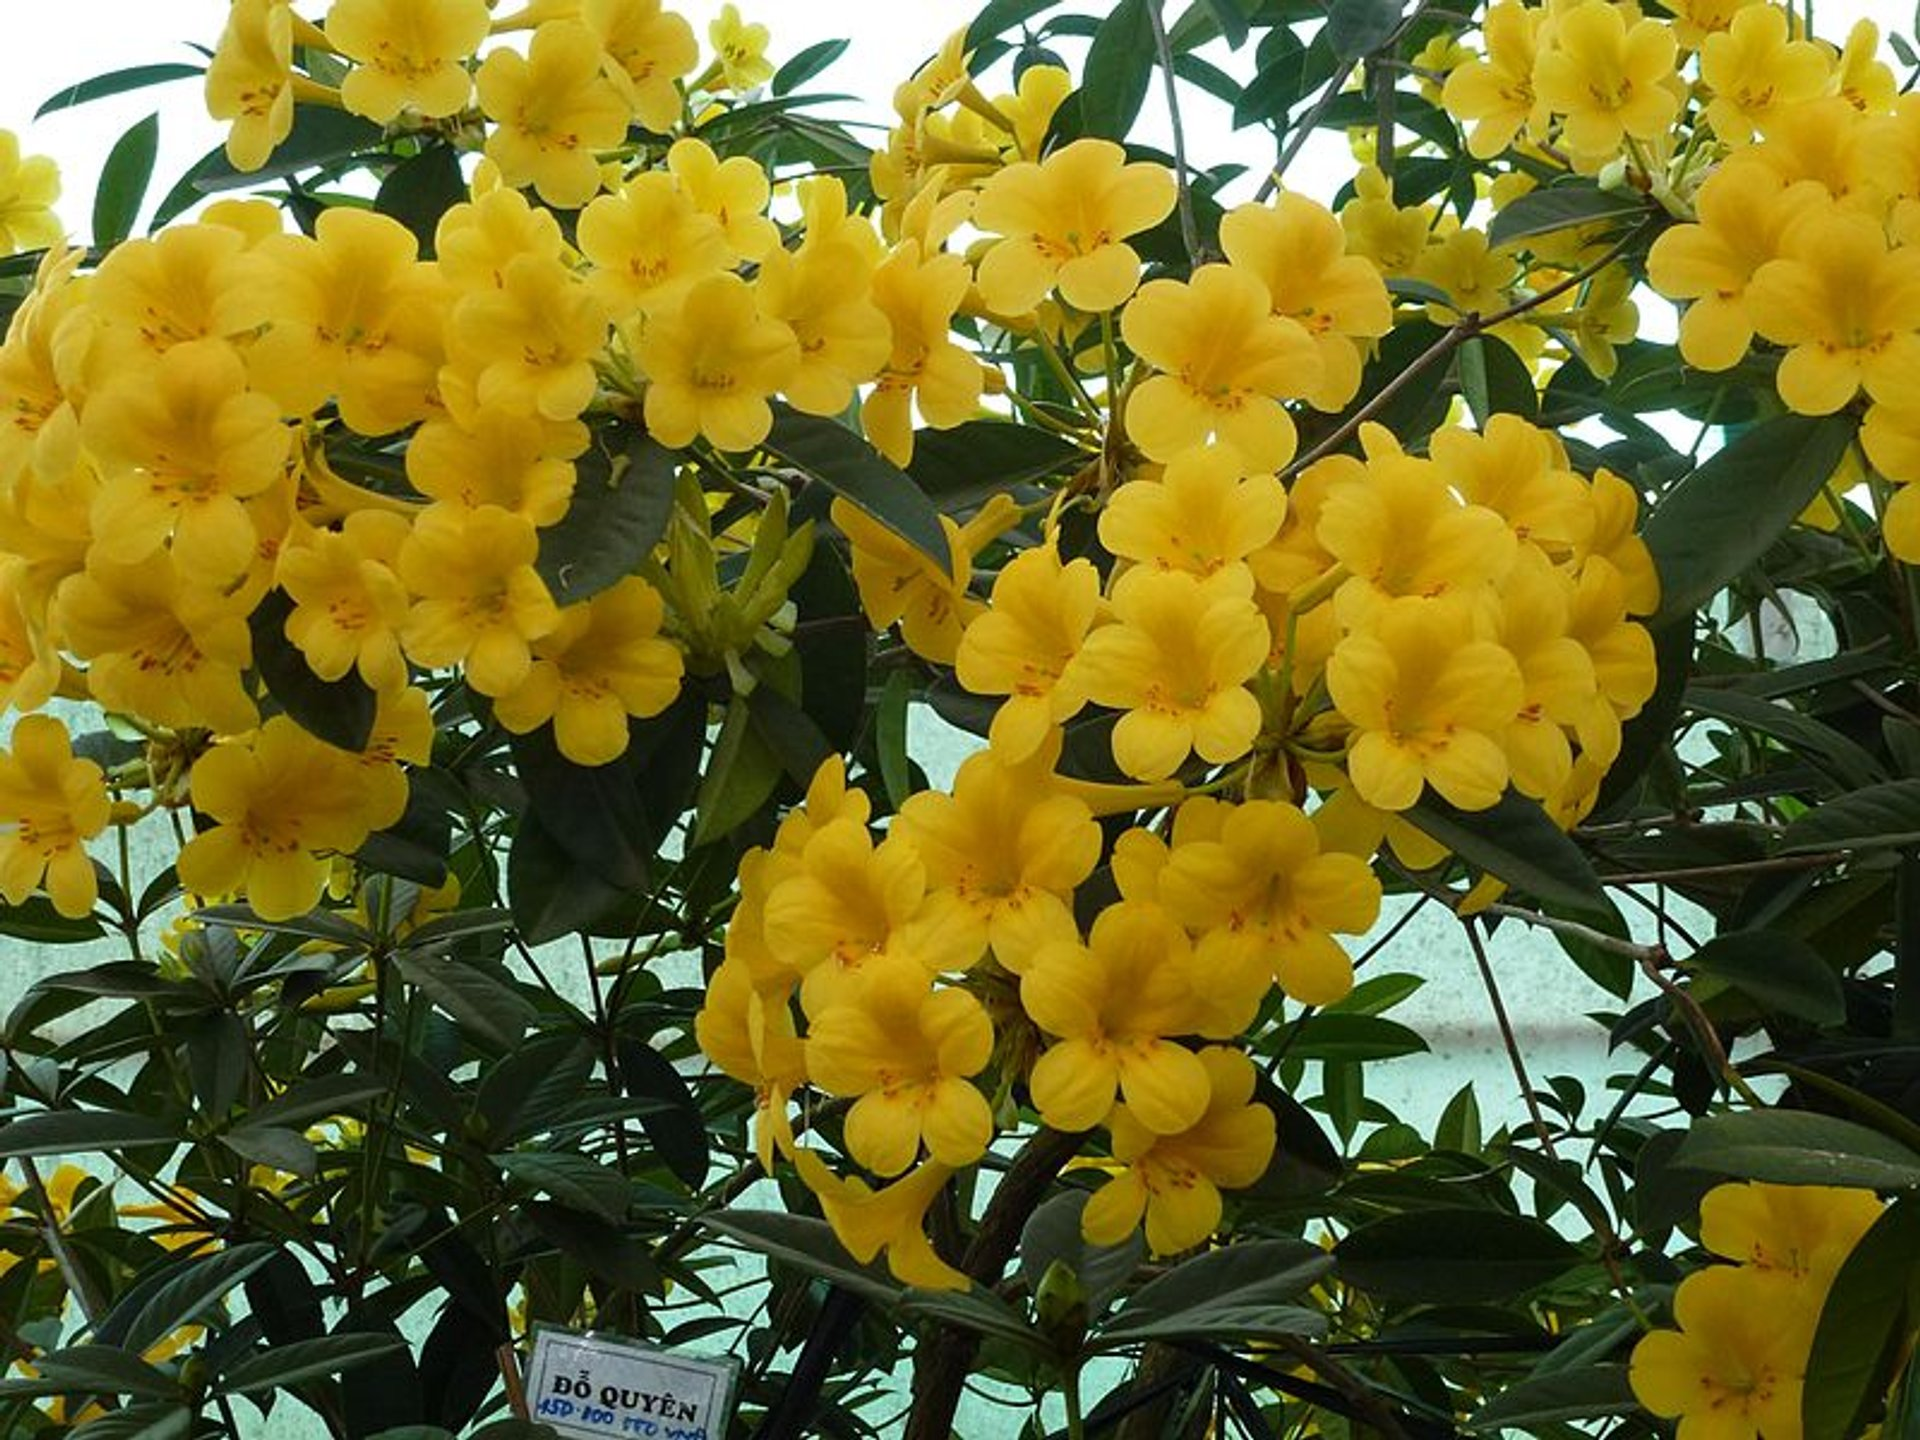 Best time for Rhododendron Blooming Season in Vietnam 2020